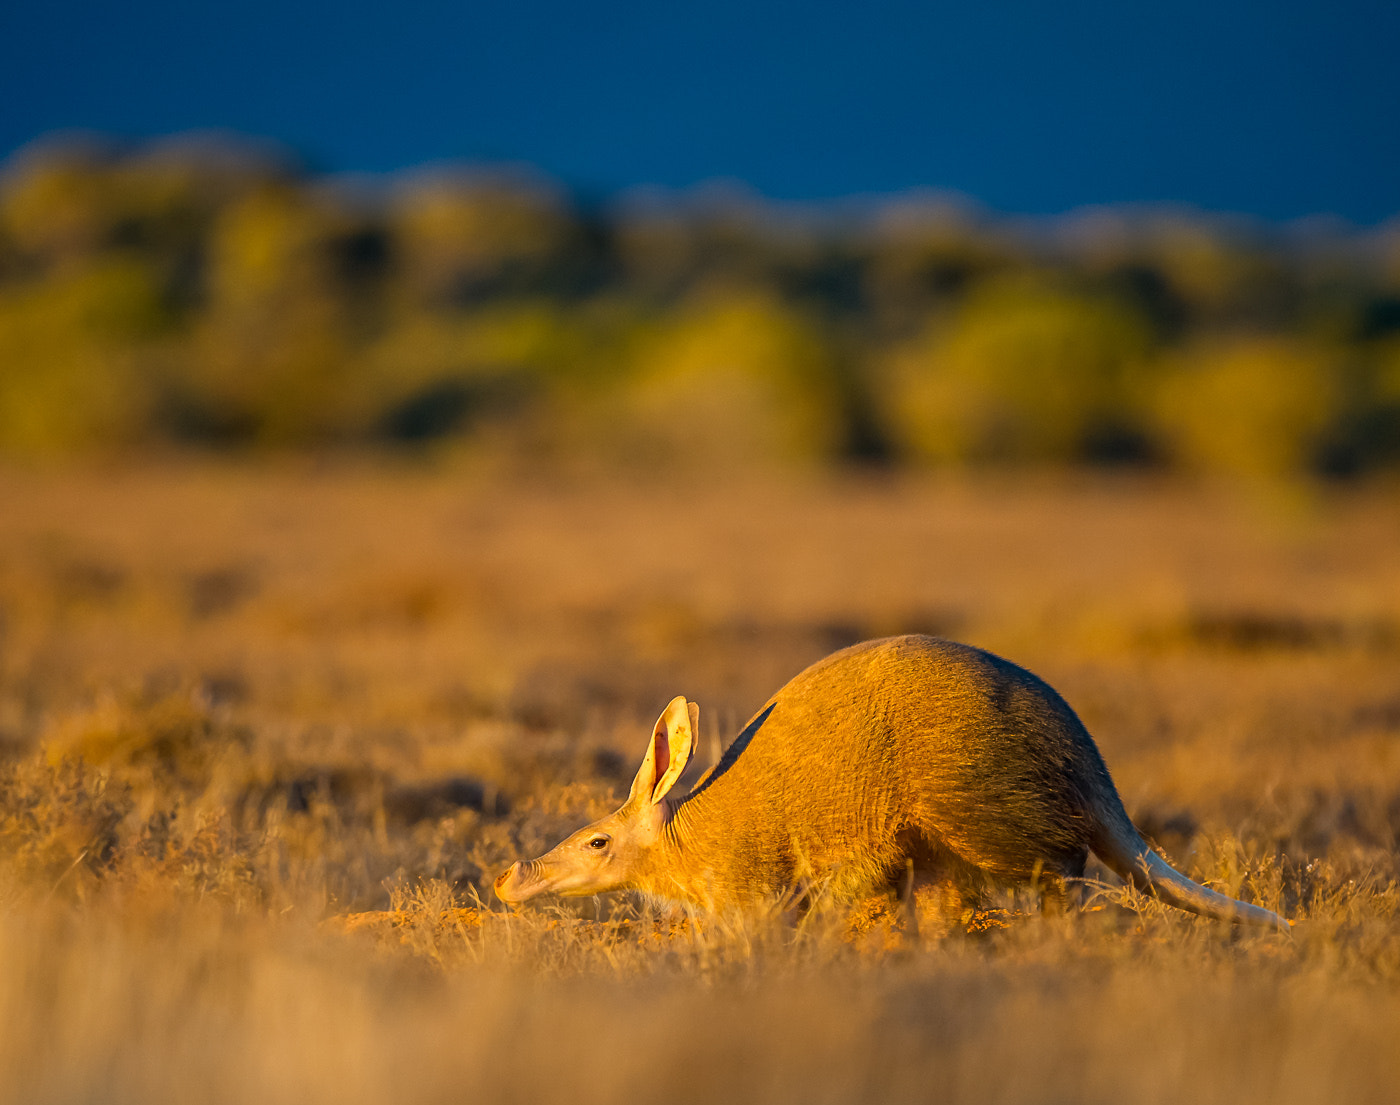 Photograph Aardvark by Bridgena Barnard on 500px